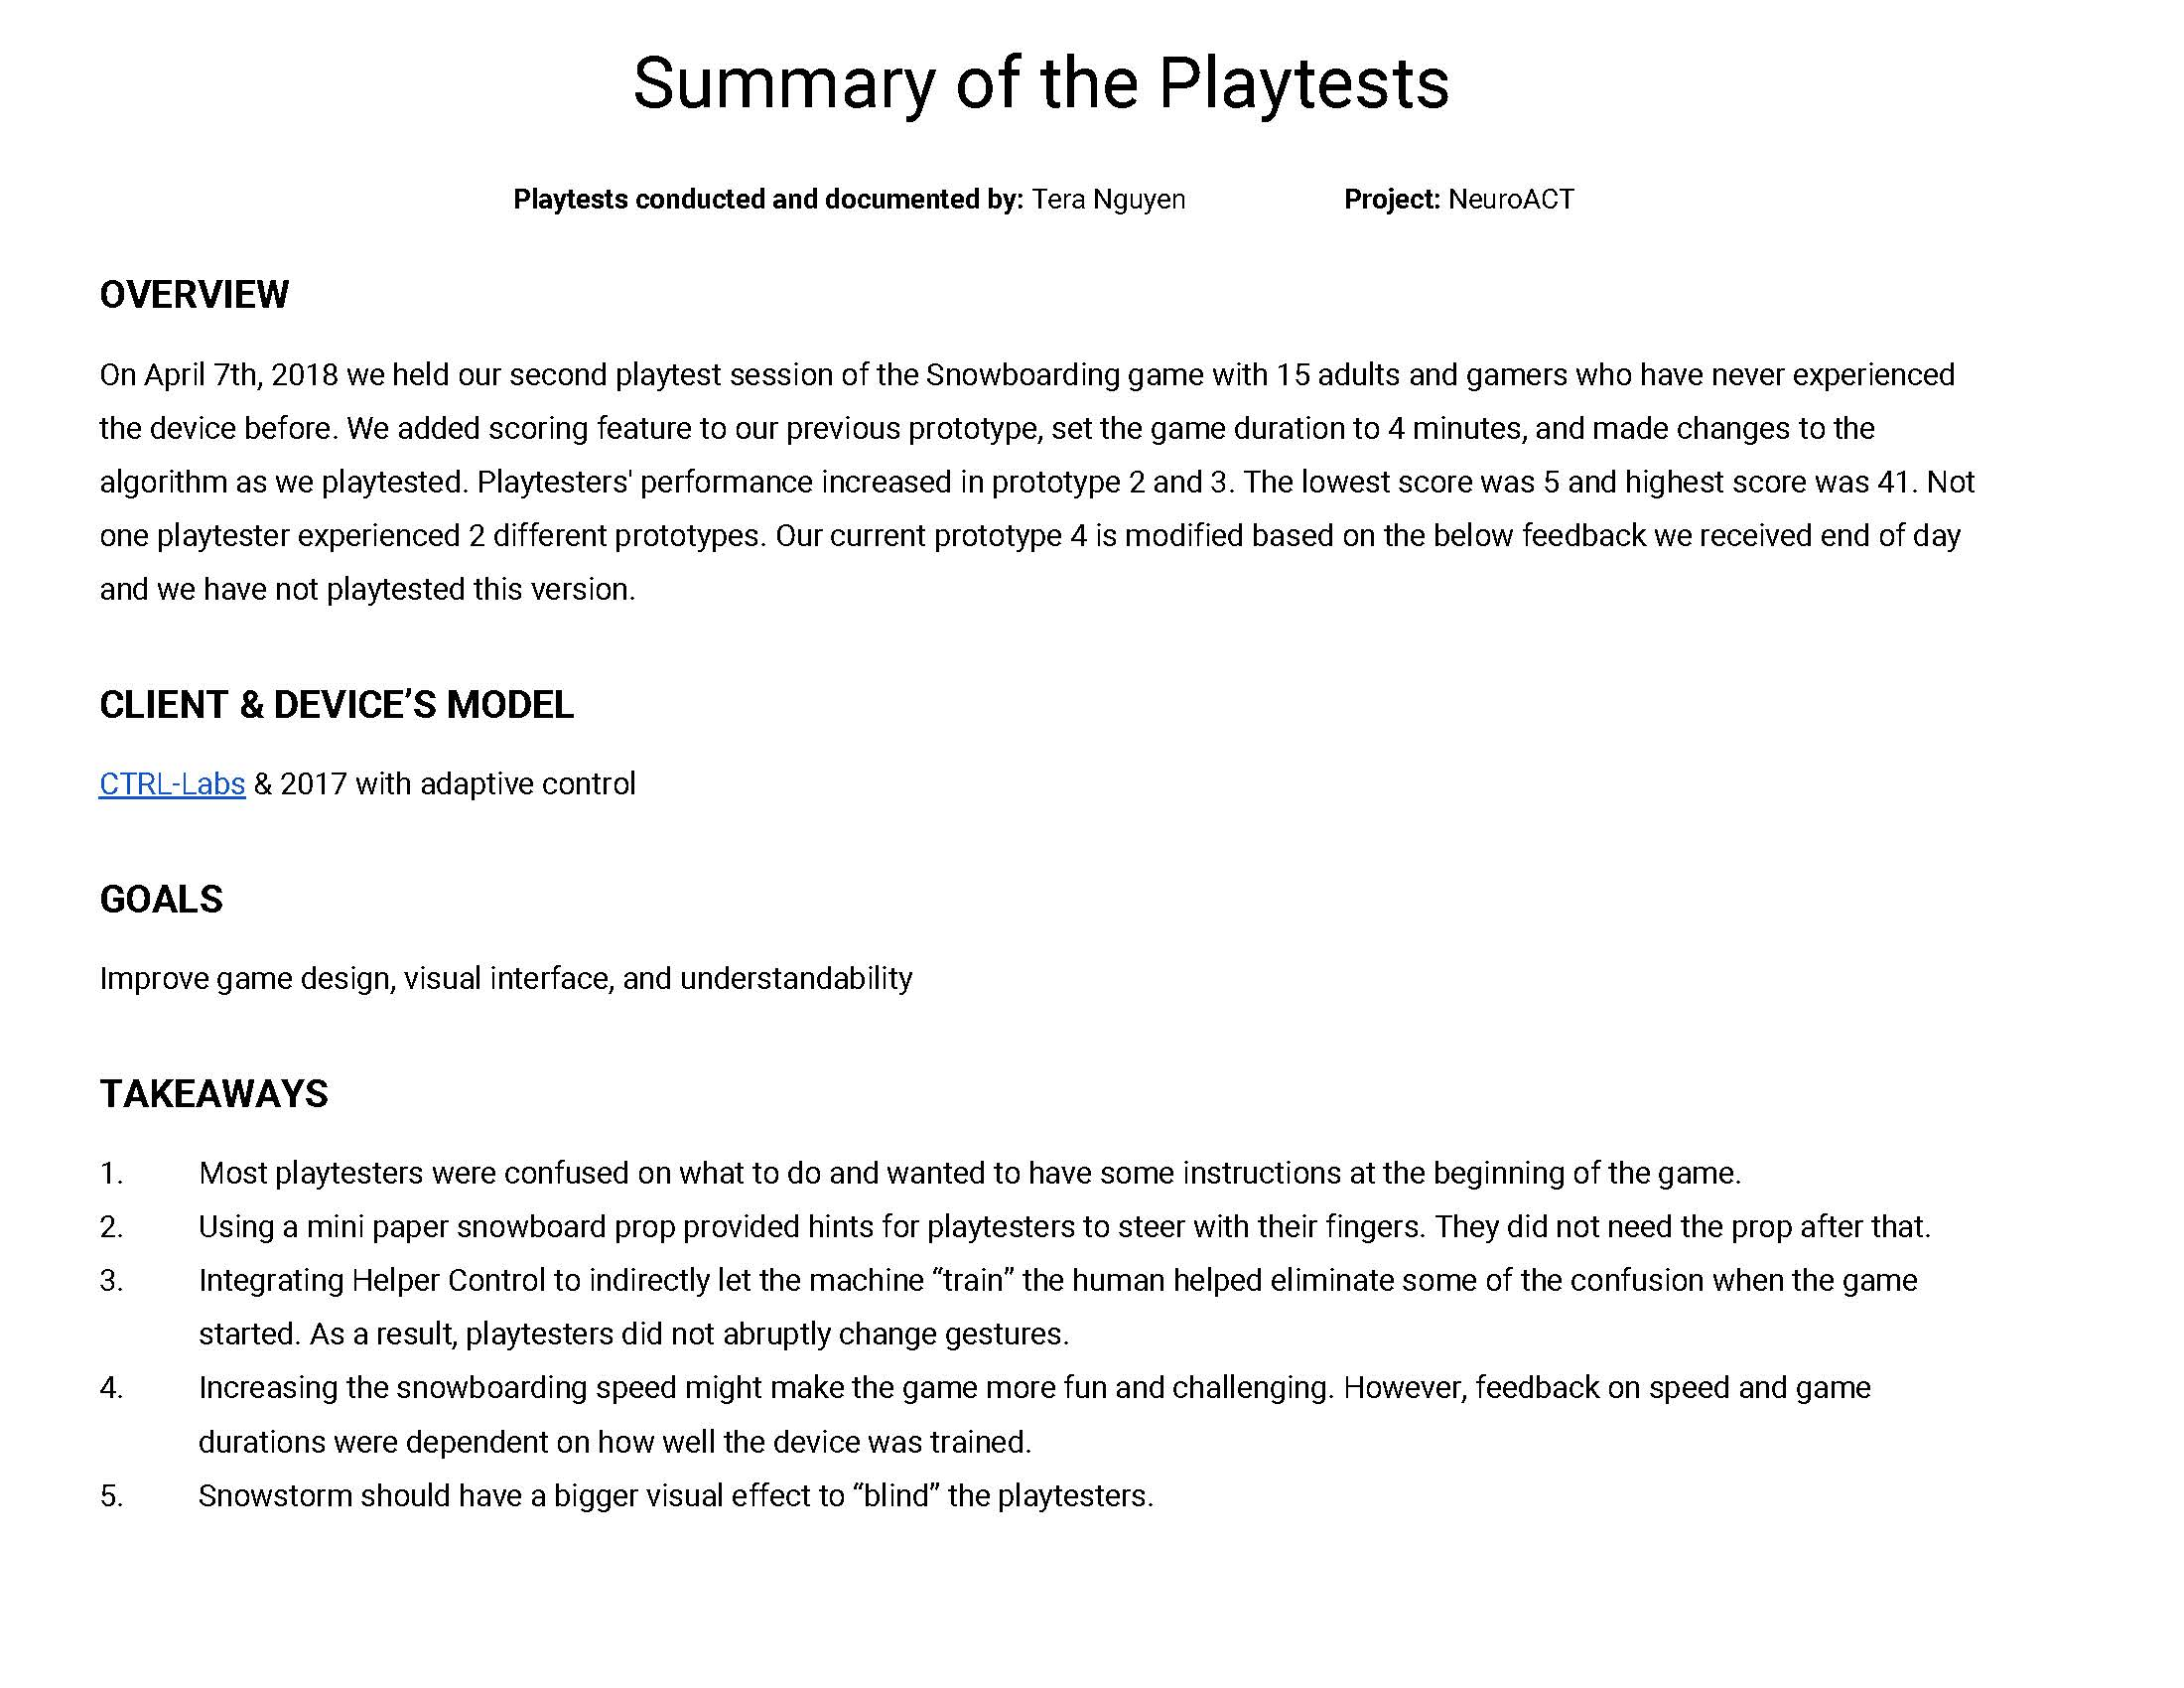 [NeuroACT] Snowboarding Playtest Summary